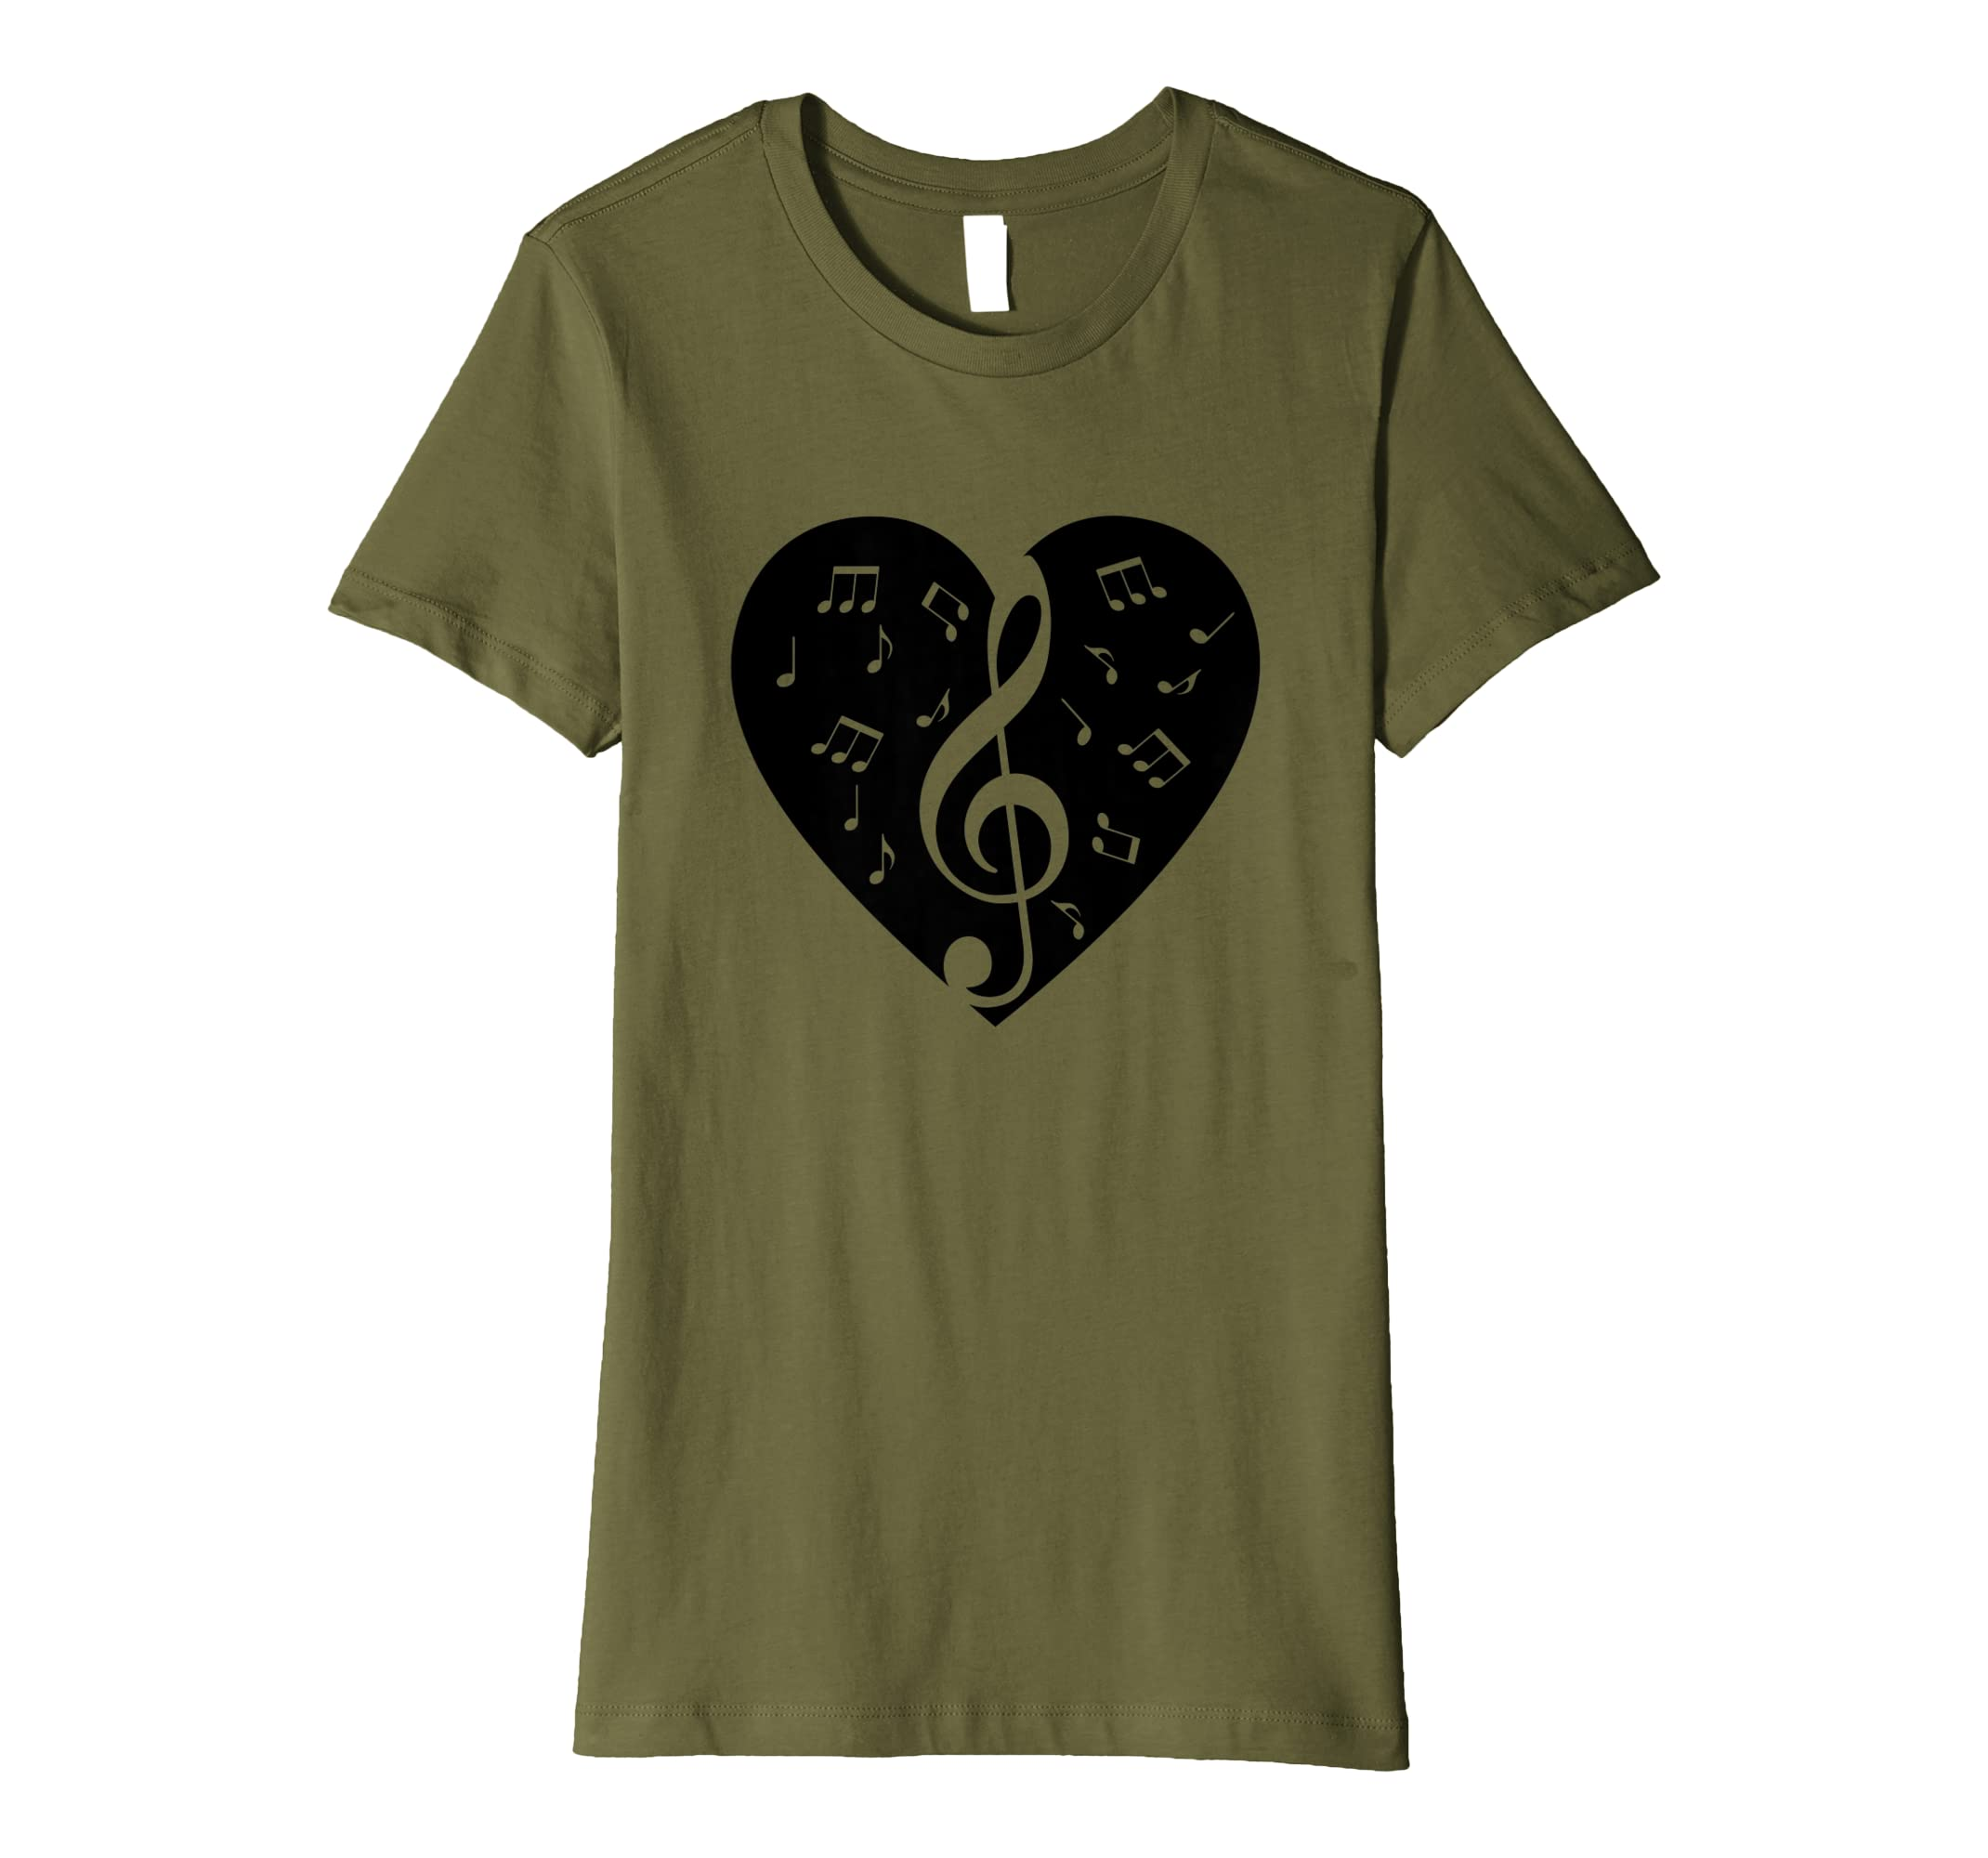 acf50abe5 Music Love Heart T-Shirt Musical Notes Clef Graphic Tee: Amazon.co.uk:  Clothing